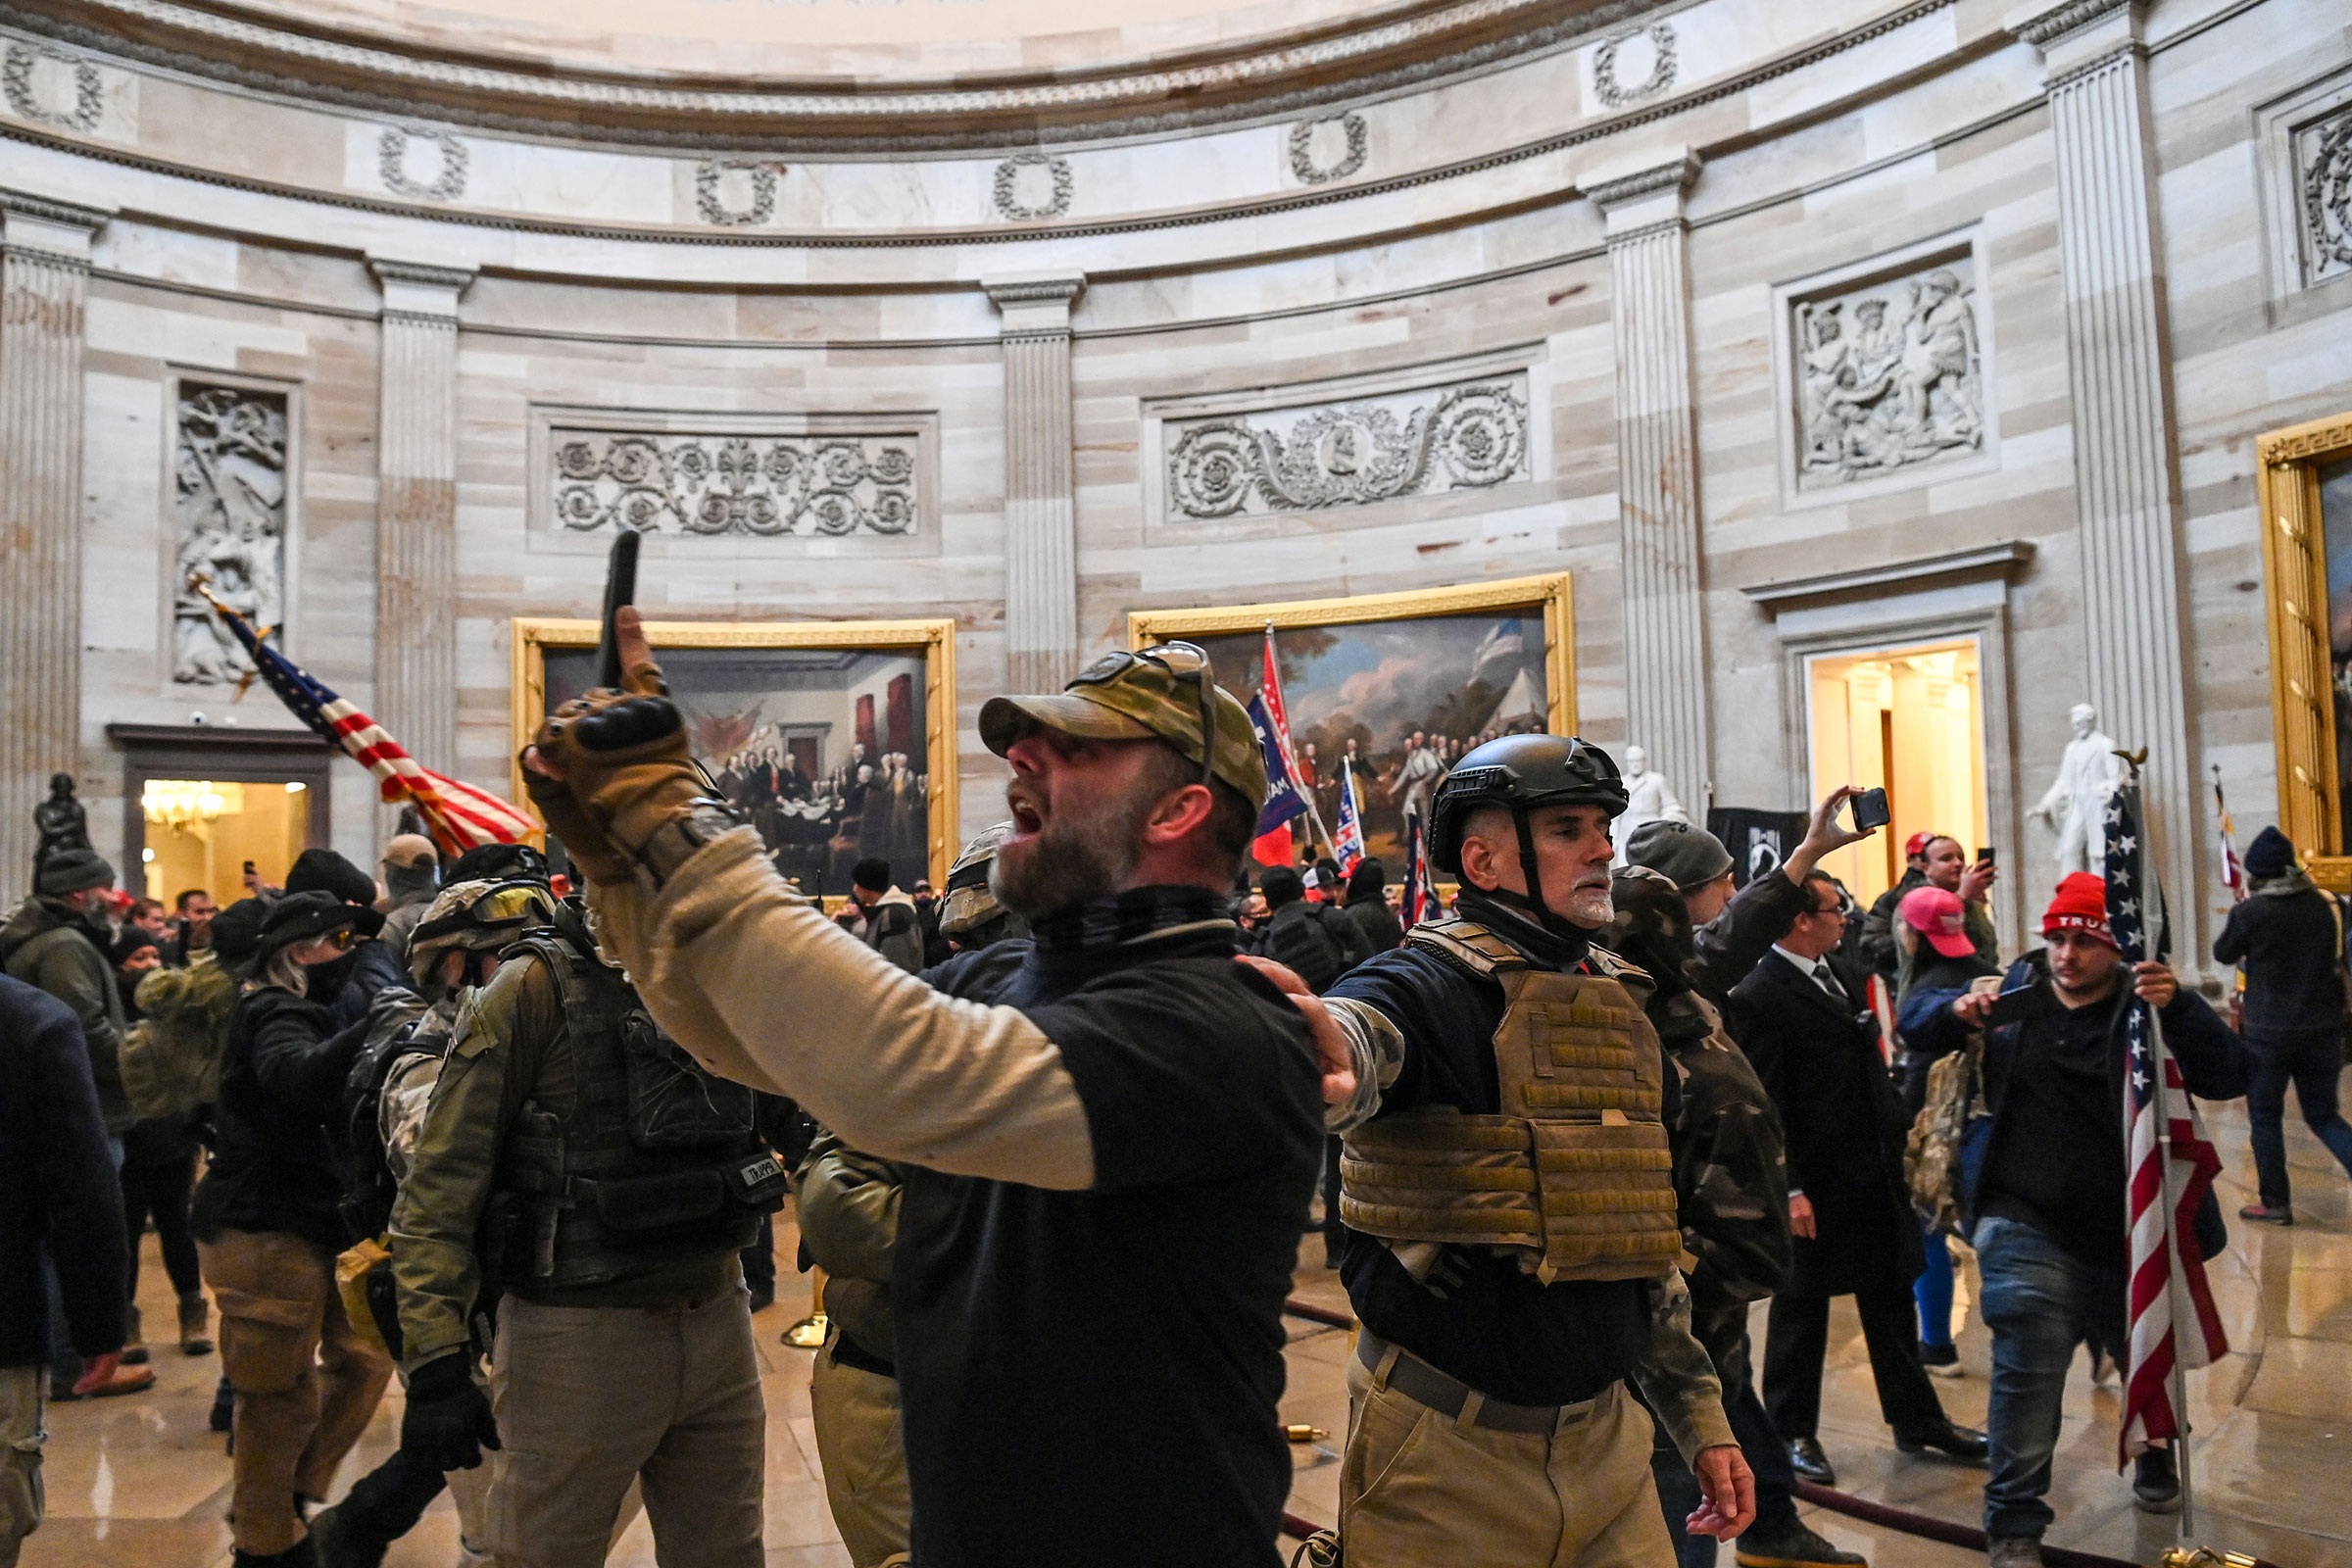 Supporters of President Donald Trump in the US Capitol's Rotunda after breeching police barriers in Washington, DC, on Jan. 6, 2021.